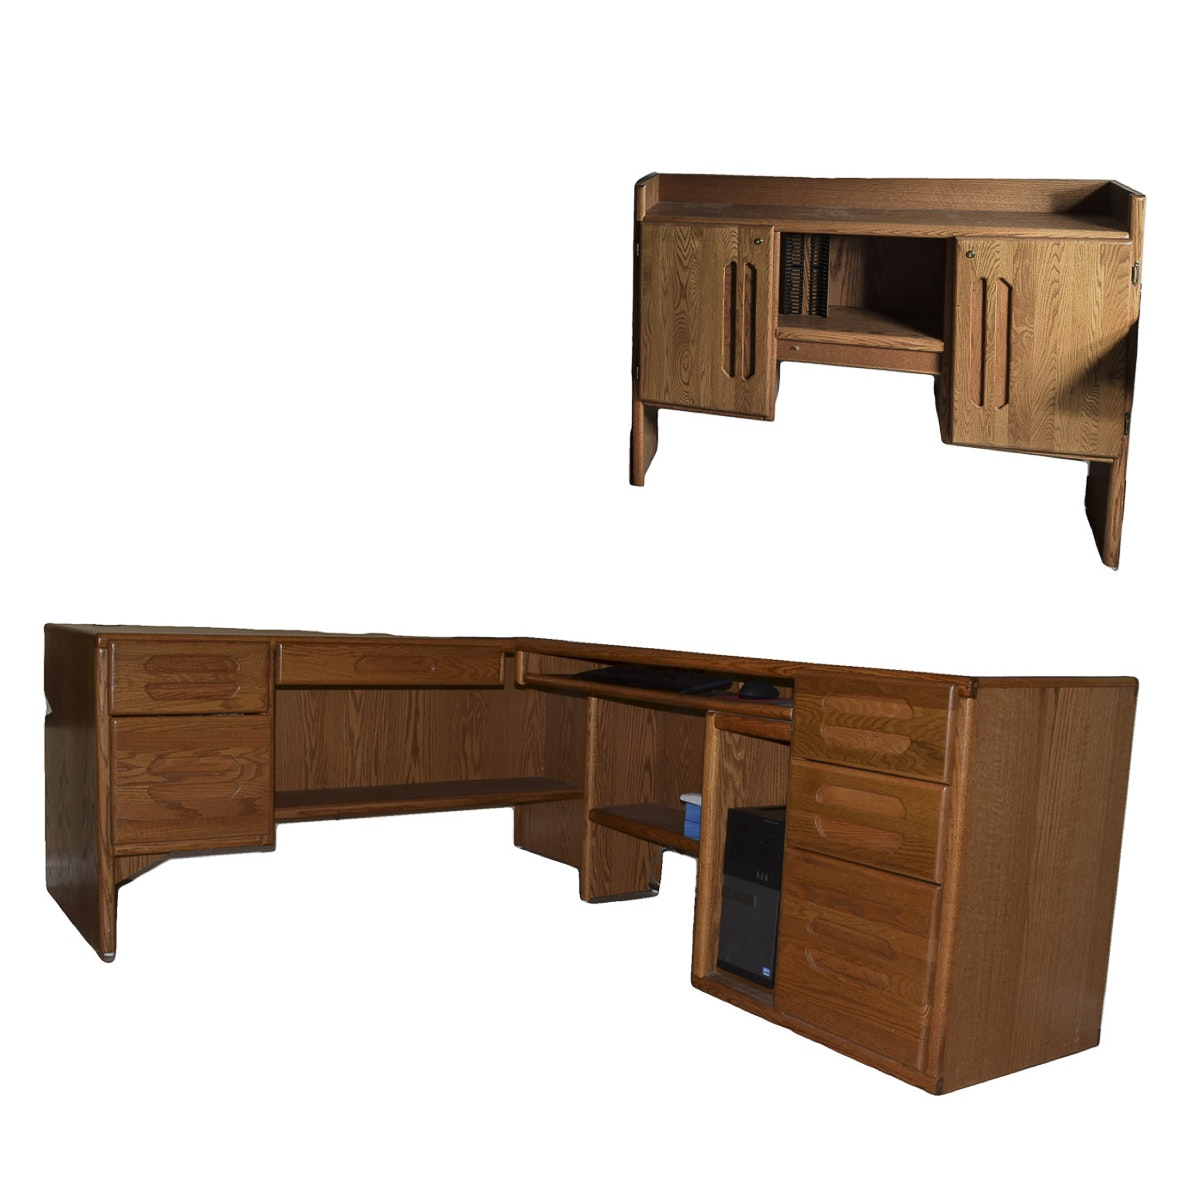 Two-Piece Oak Desk Set with Hutch